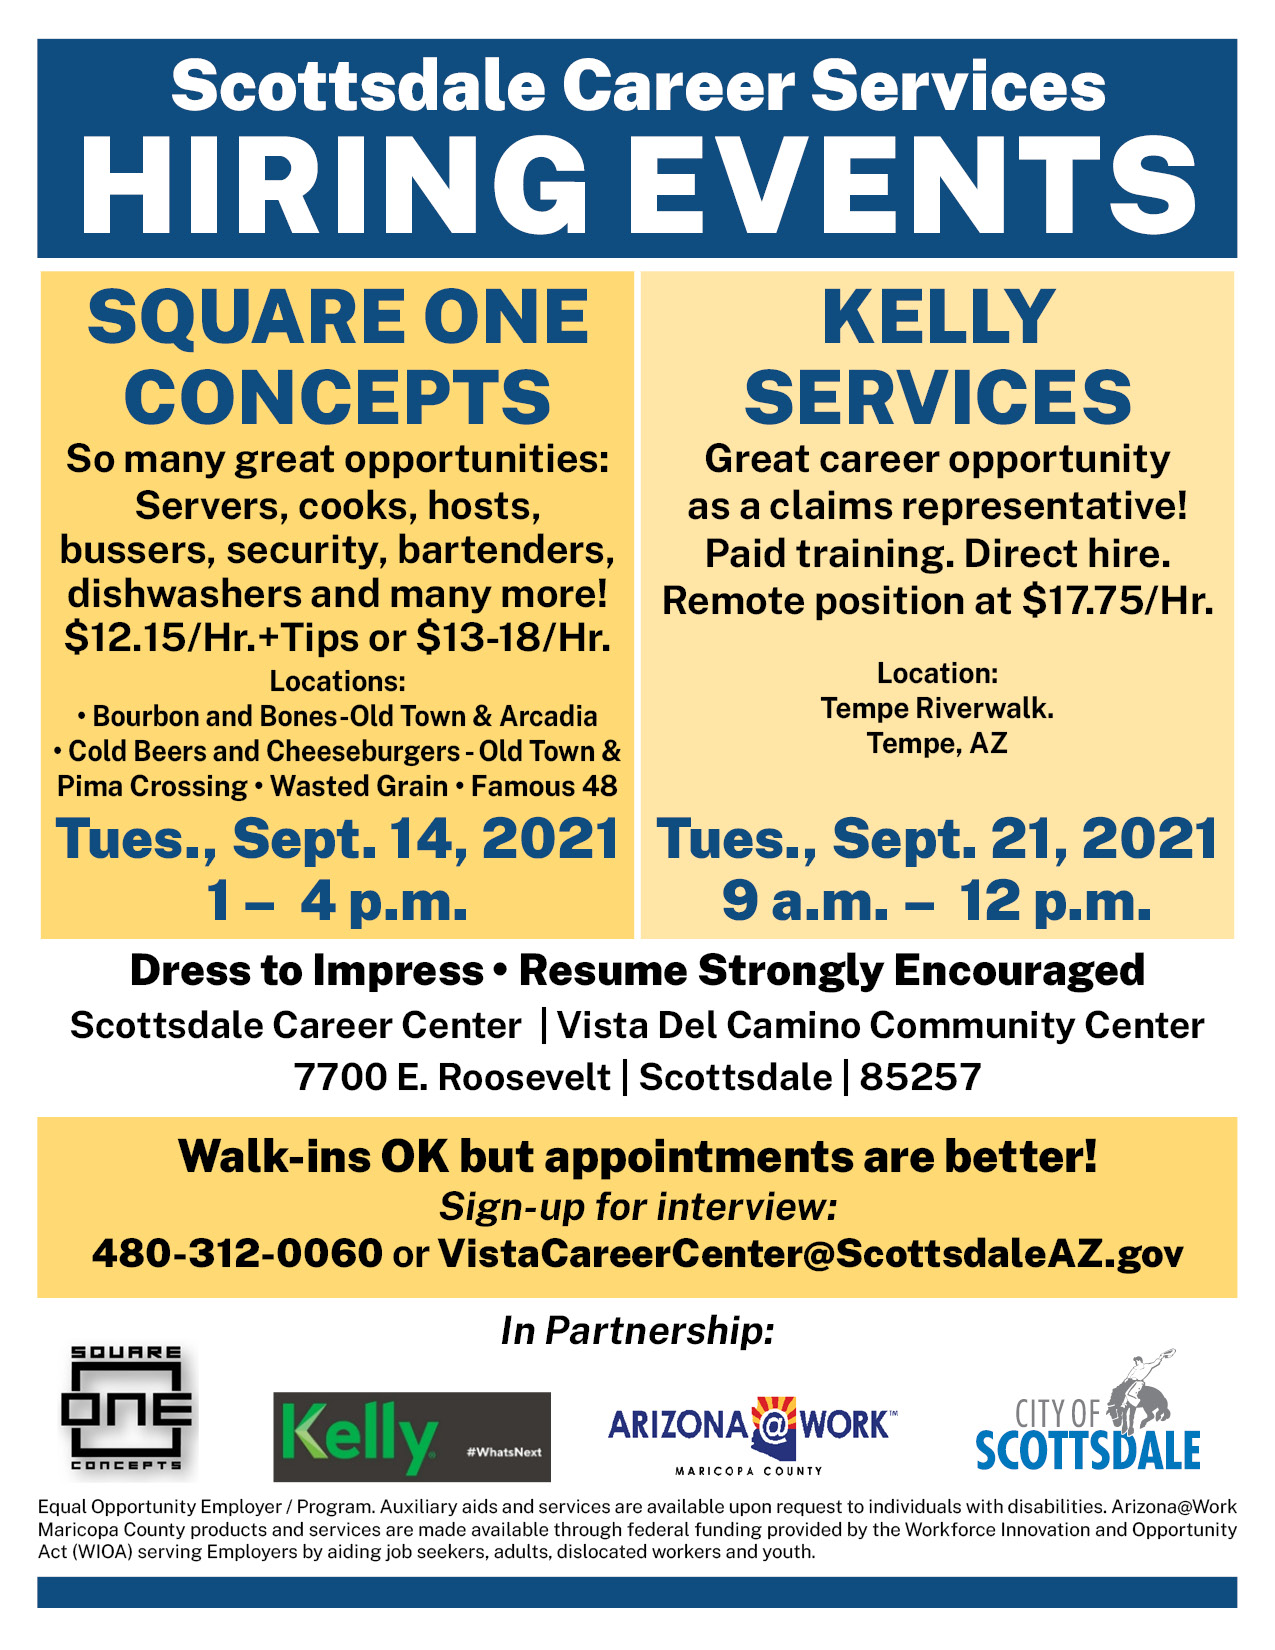 Square One Concepts Hiring Event